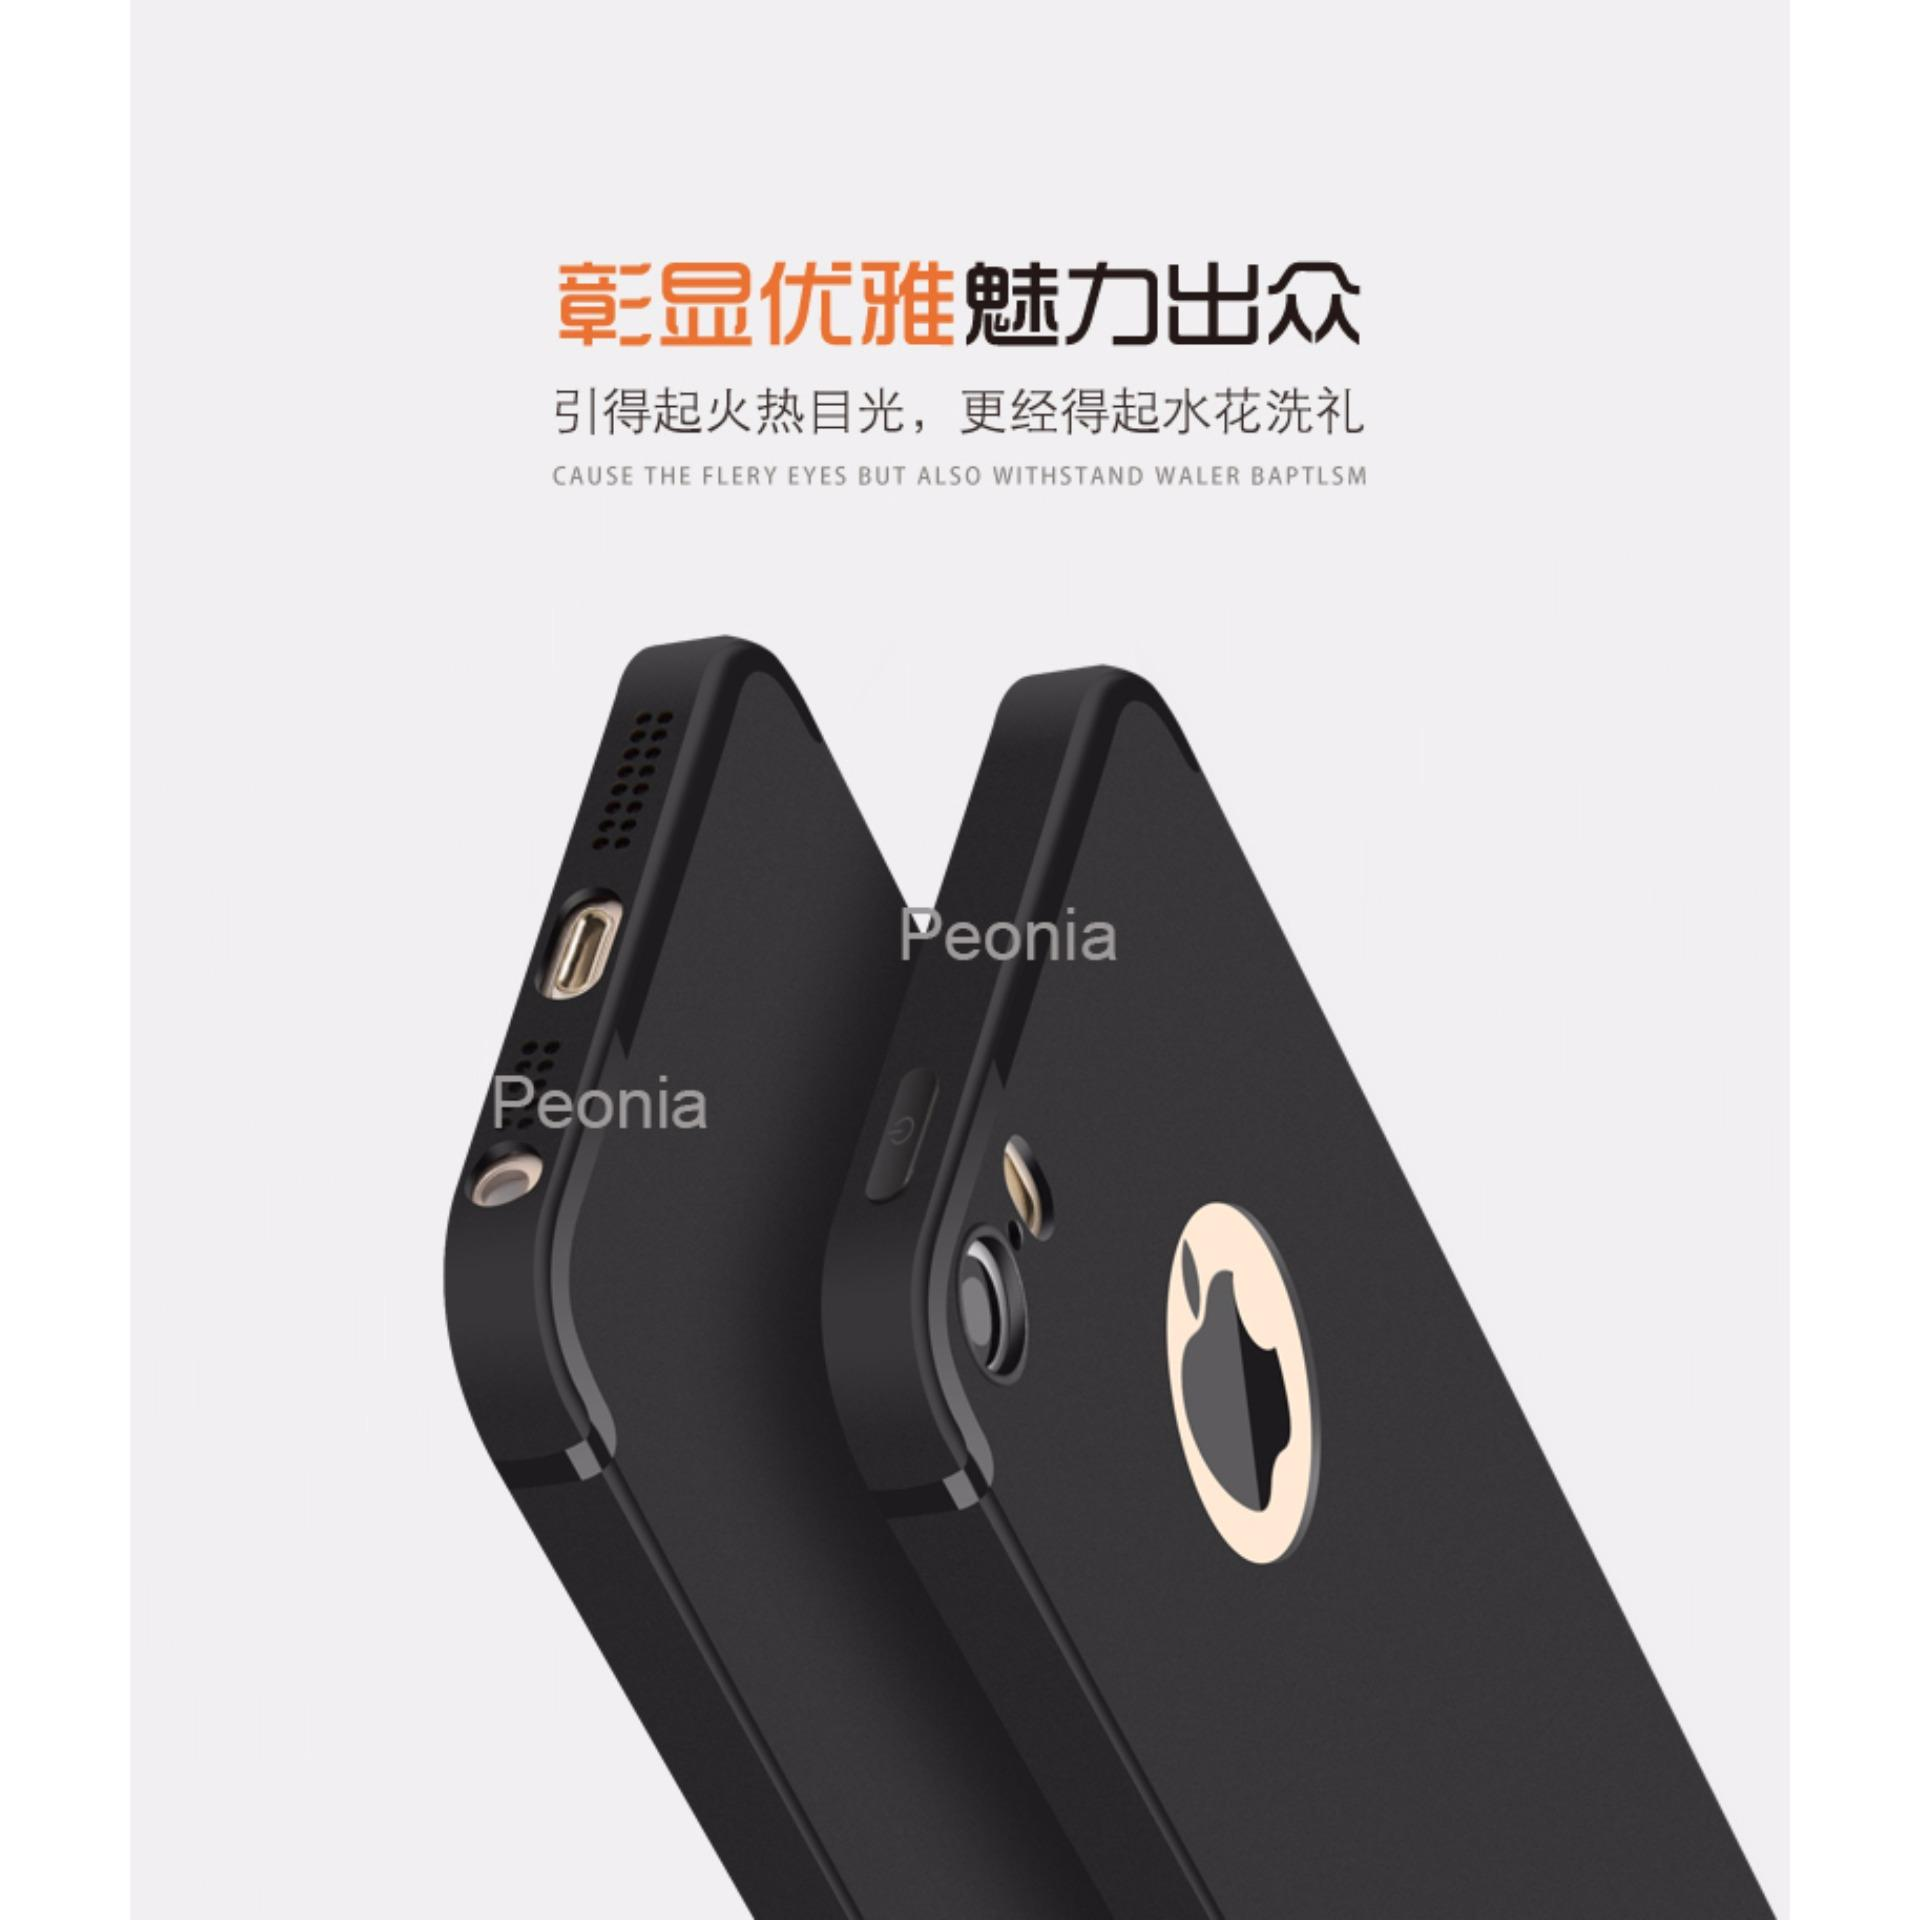 ... Oppo A39 Rounded Tempered Source Peonia Anti Fingerprint. Oppo A39 Rounded Tempered Source Peonia Anti Fingerprint. Calandiva Shockproof Hybrid Case ...